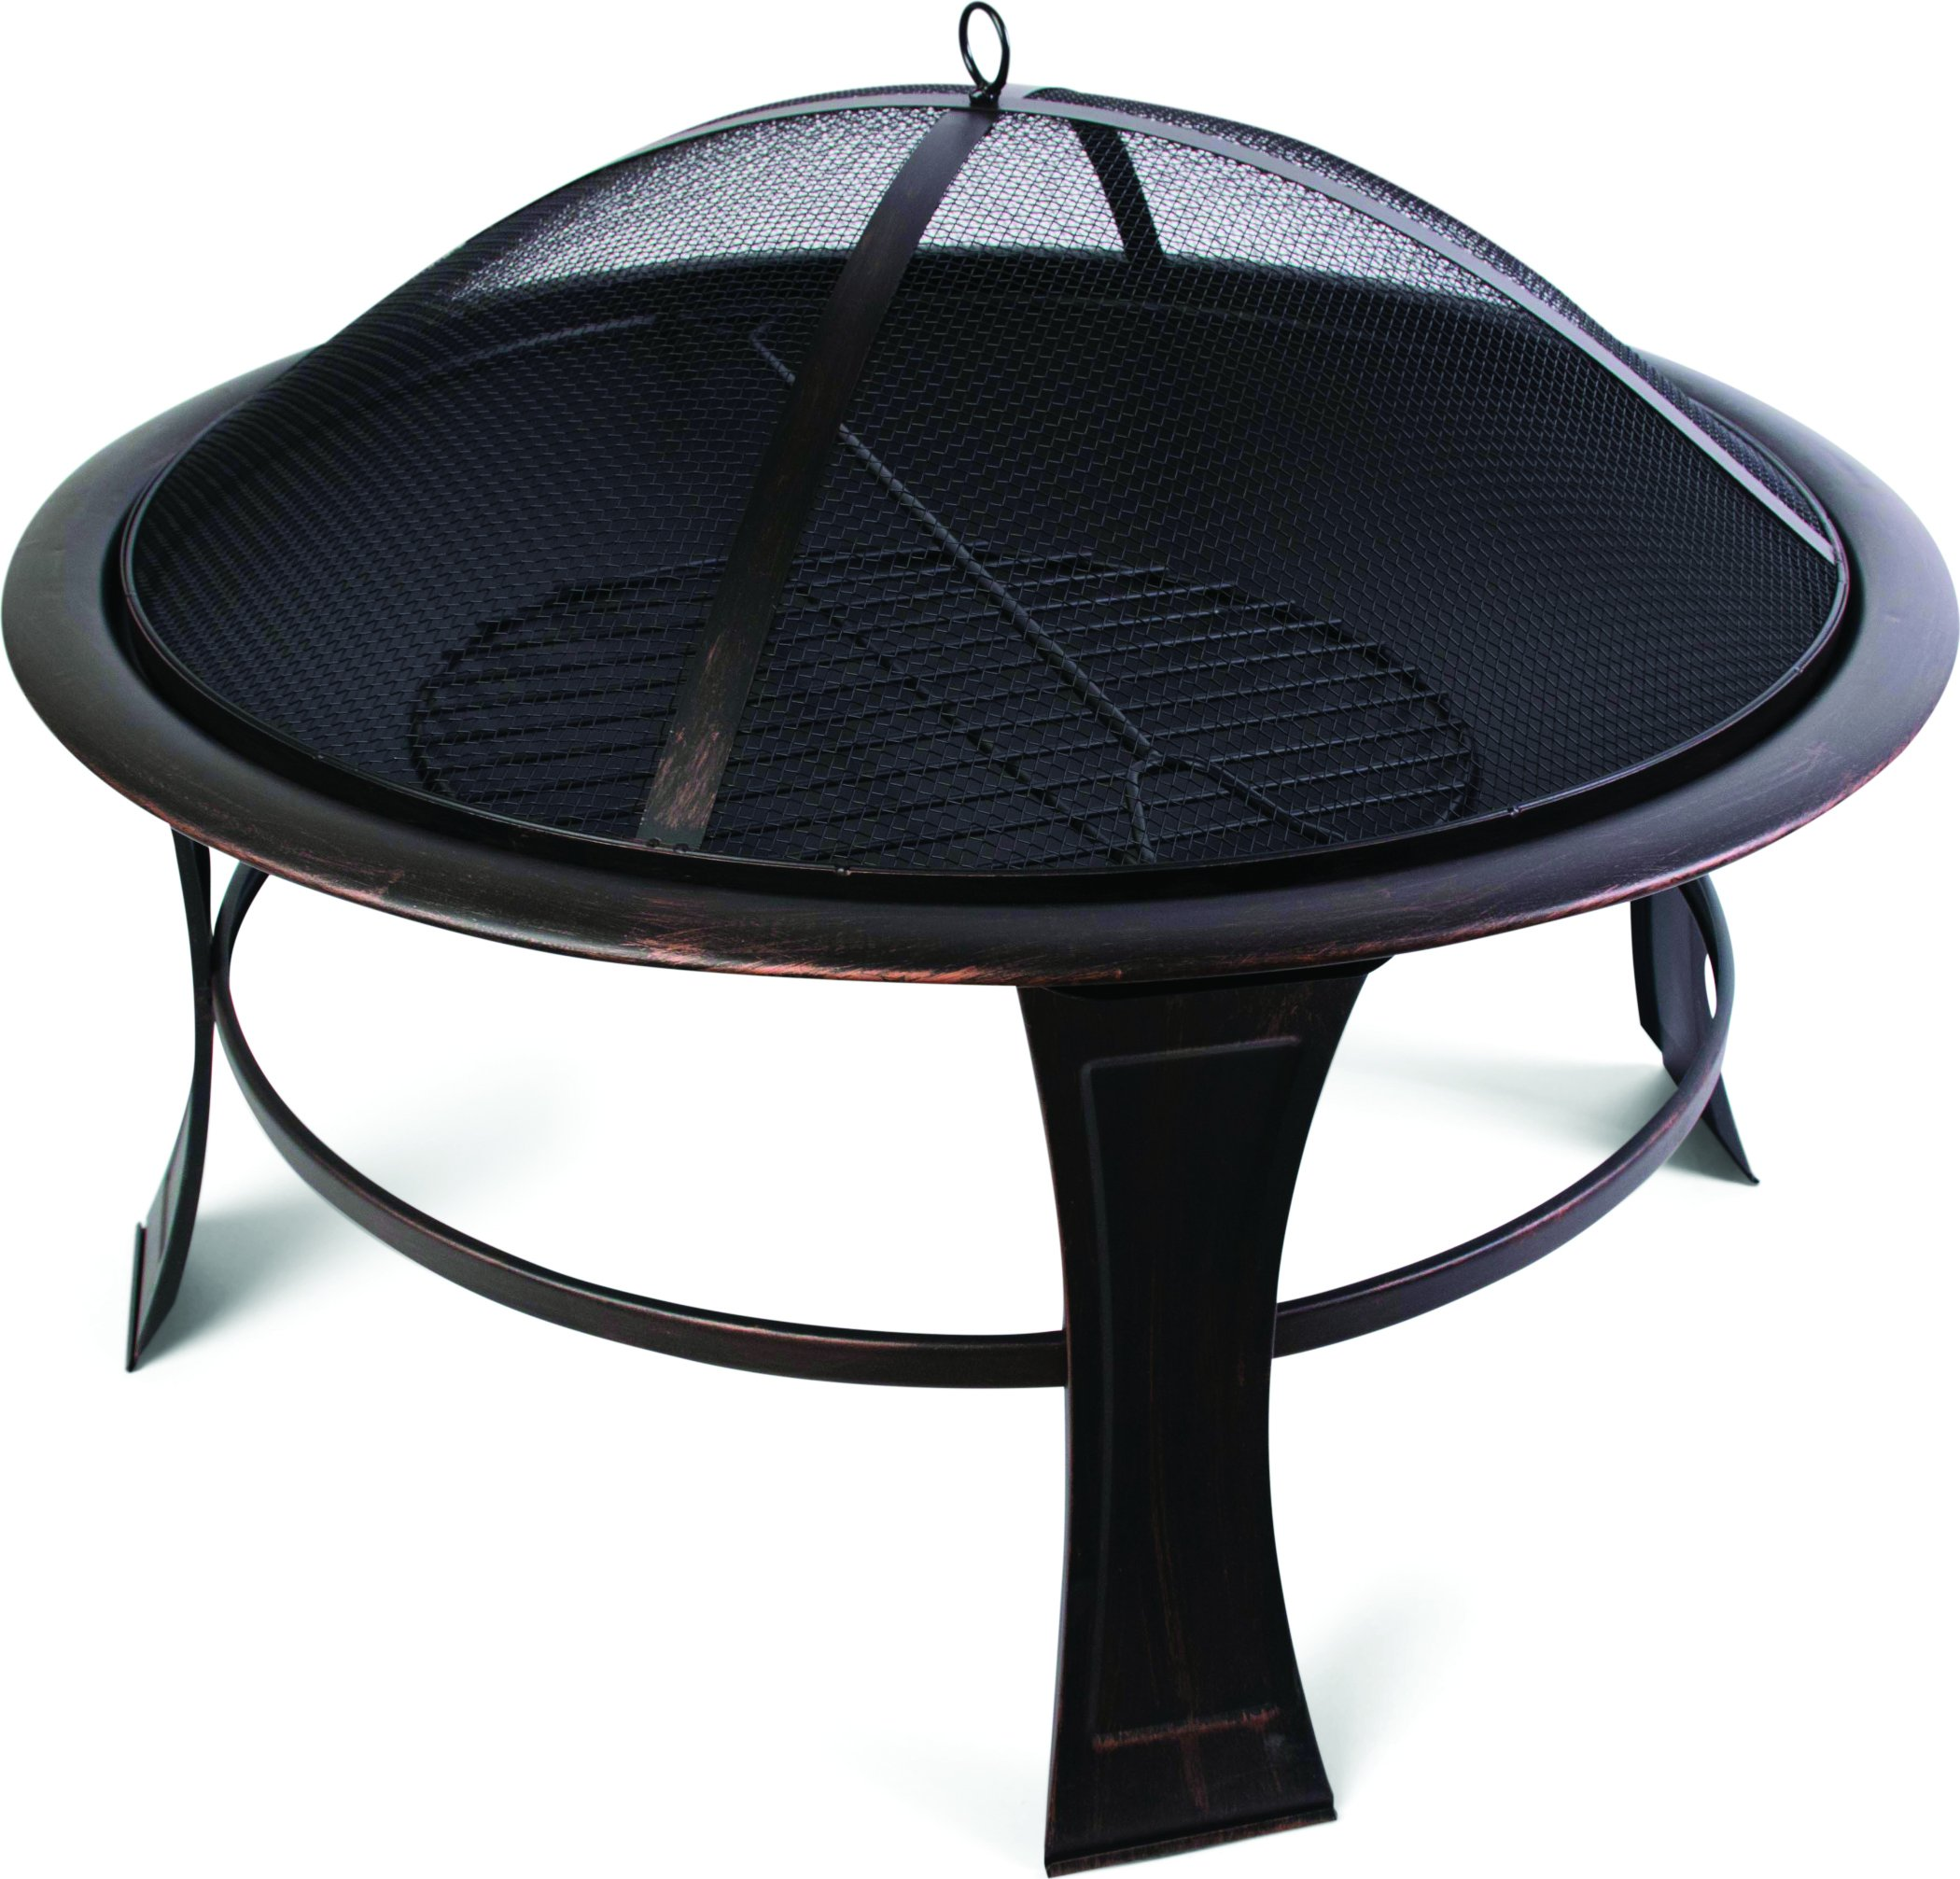 "Harbor Gardens LF246 30"" Savannah Fire Bowl/Pit, Powder Coated Black Stainless Steel - Heat-resistant, powder coated Steel bowl Mesh fire screen with high temperature paint and poker/lift tool Screen lift tool and wood grate included - patio, fire-pits-outdoor-fireplaces, outdoor-decor - 81HGHR%2B5MLL -"